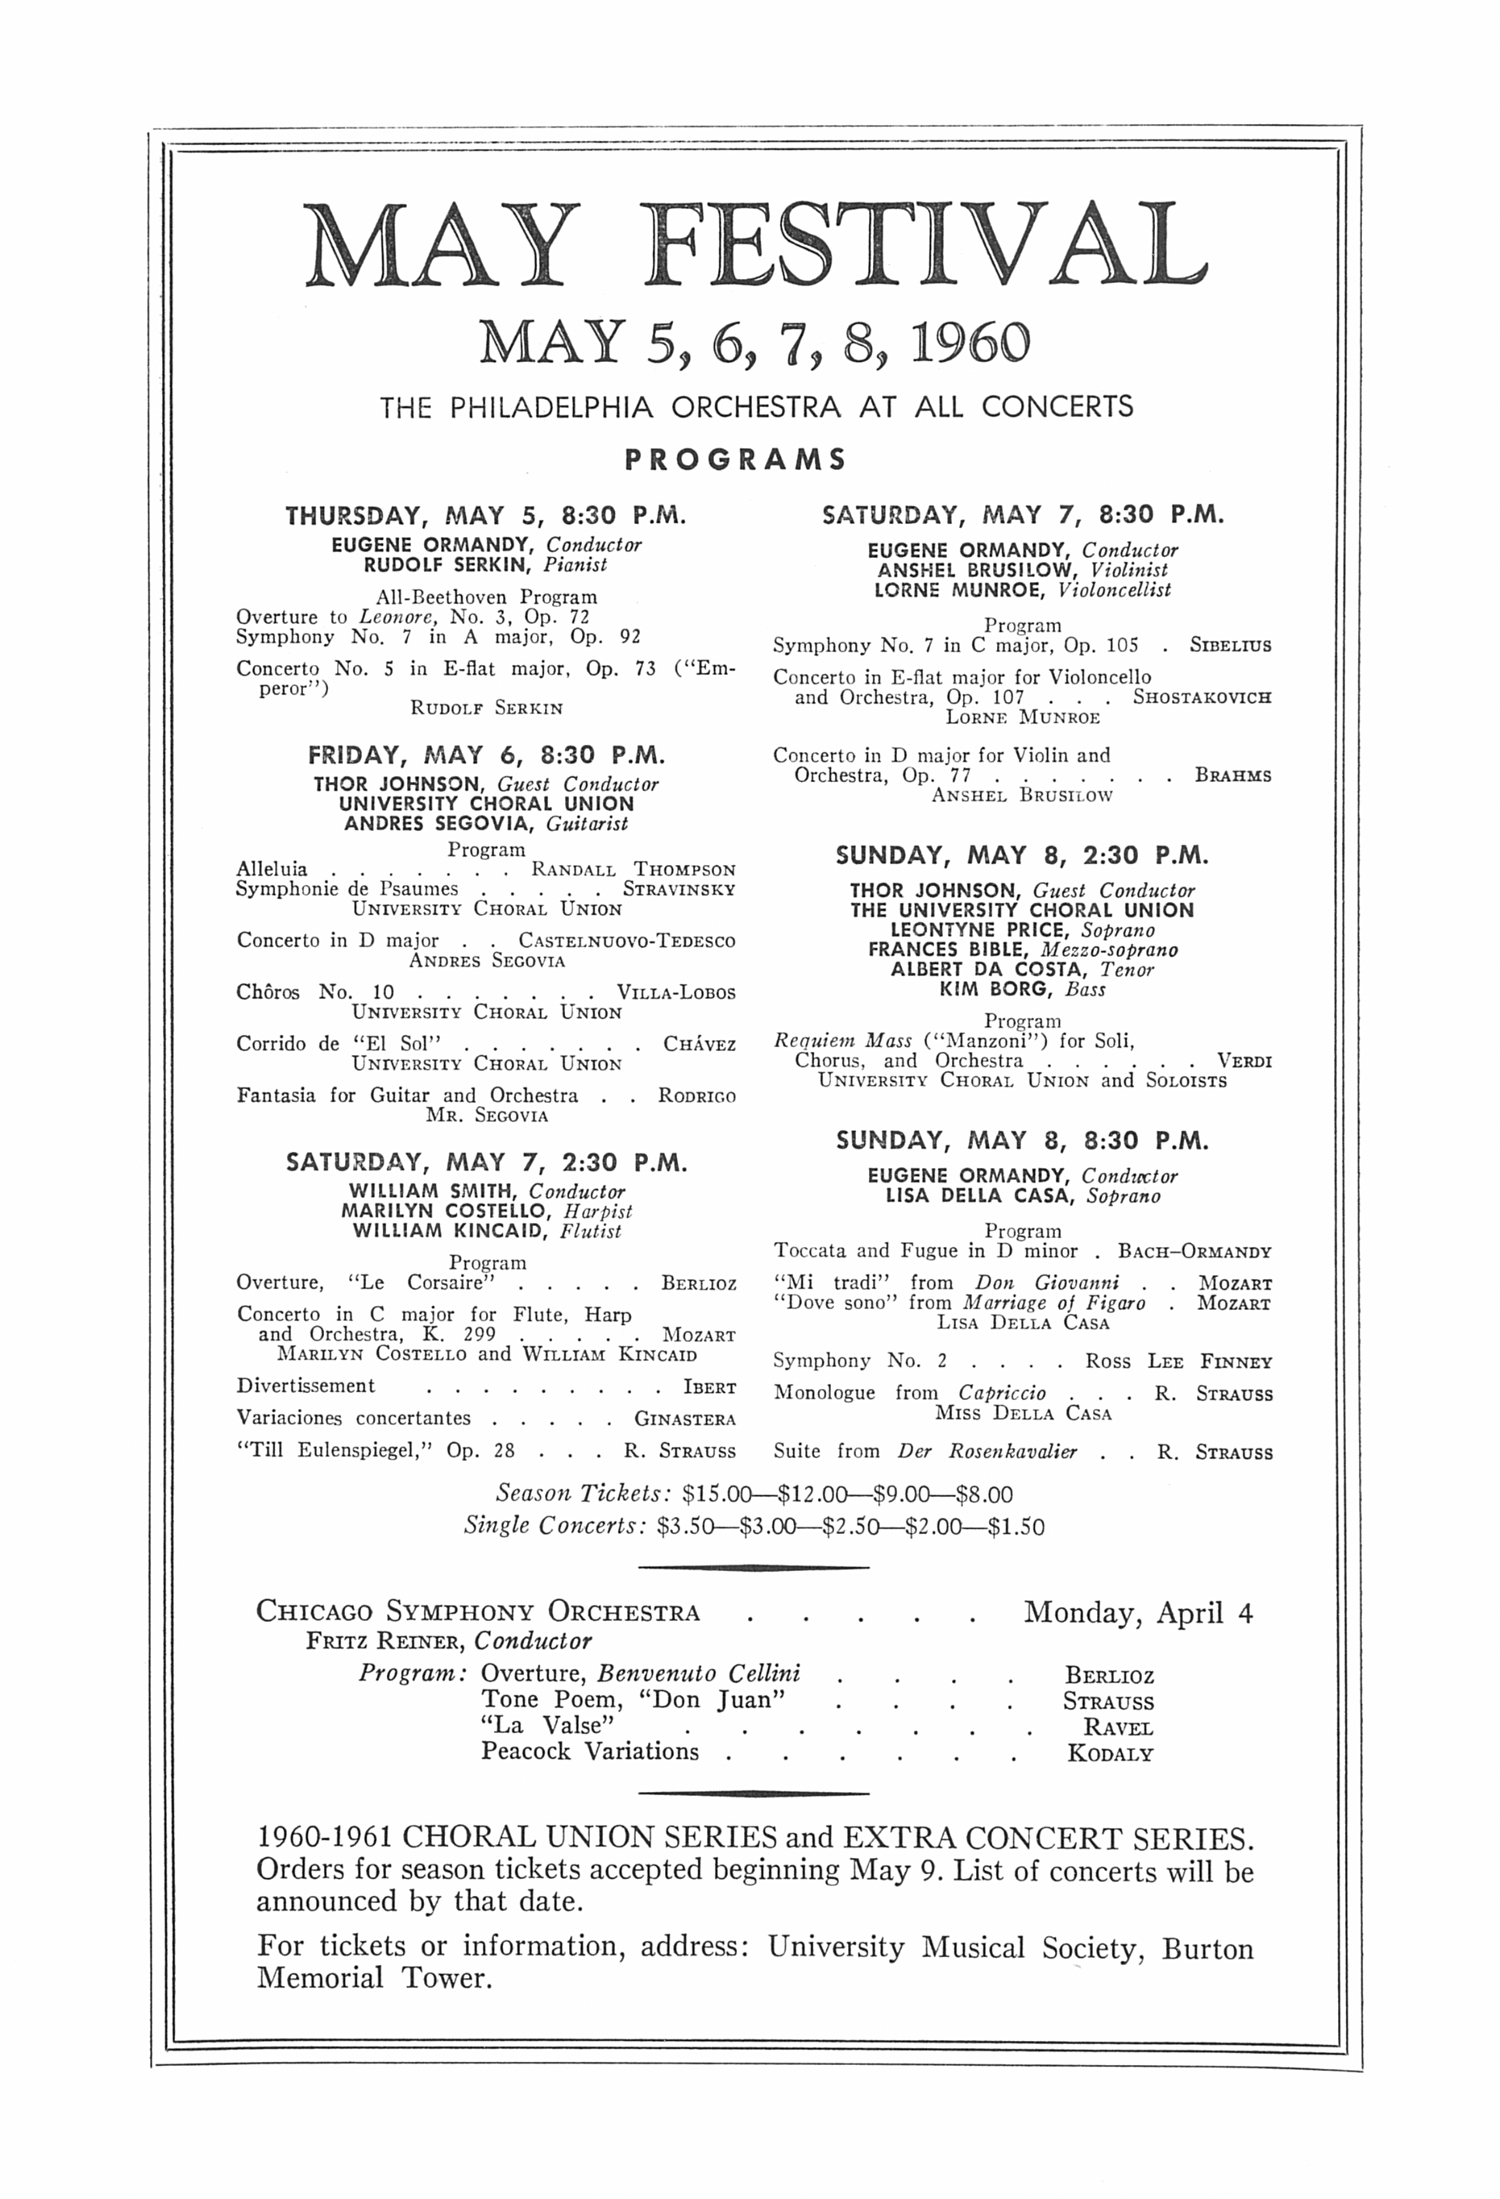 UMS Concert Program, March 24, 1960: The Lamoureux Orchestra --  image